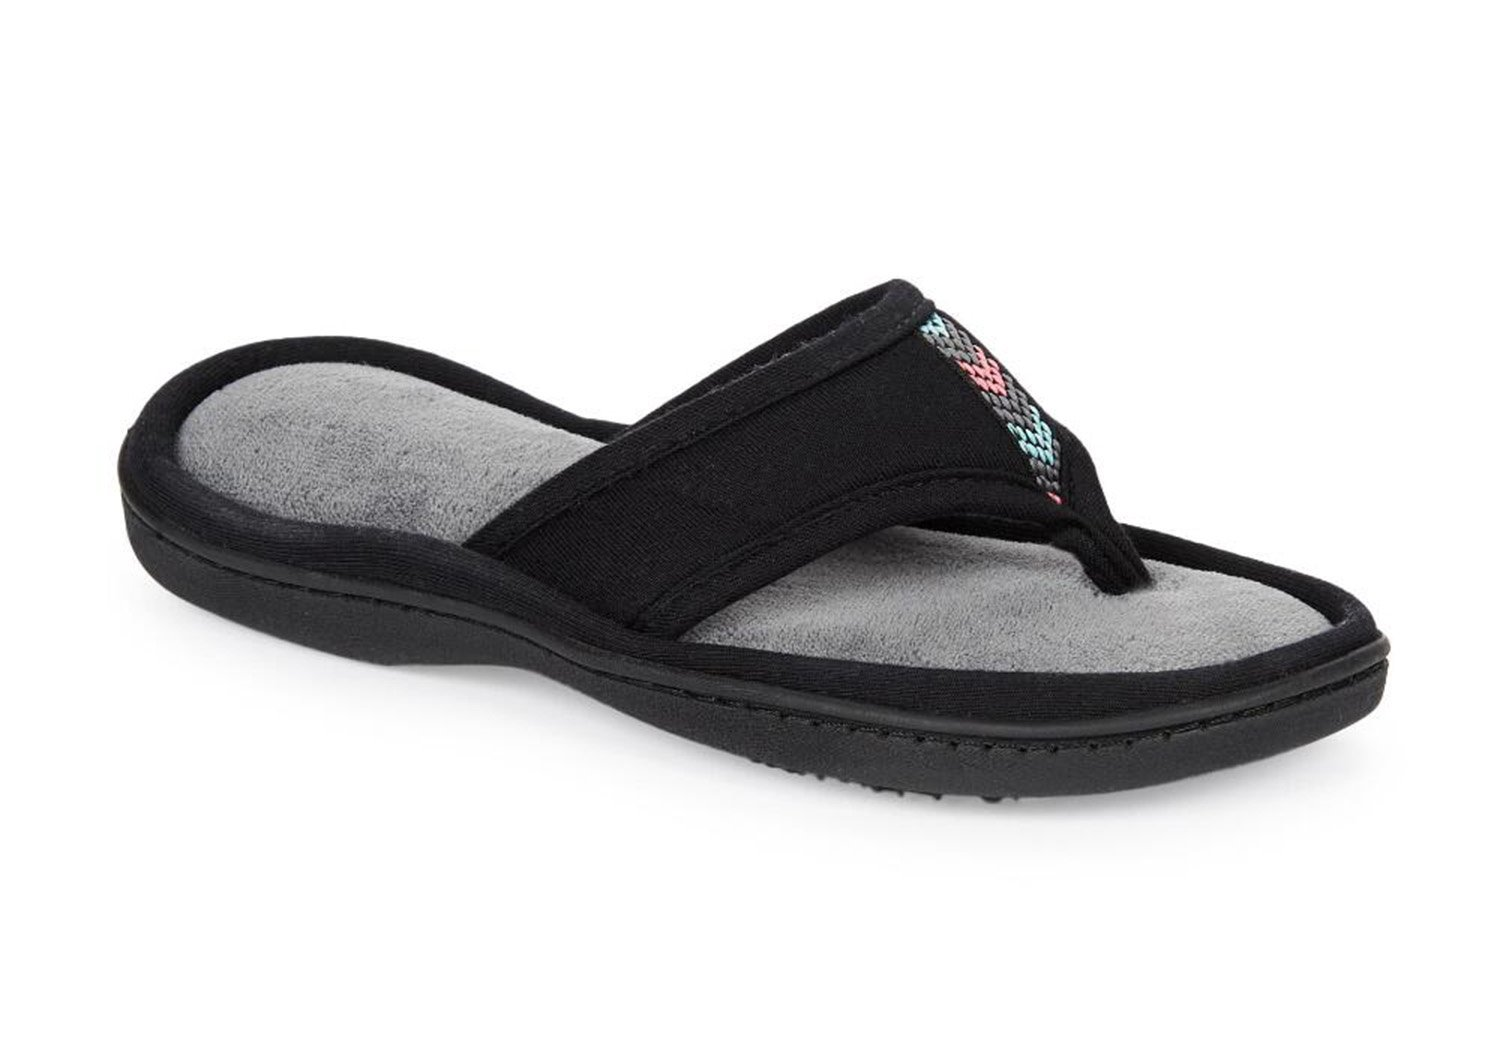 ISOTONER Jersey Luna Women's Summer Thong Slippers Flip Flop Style with Foam Cushion (Large (8.5-9), Black)